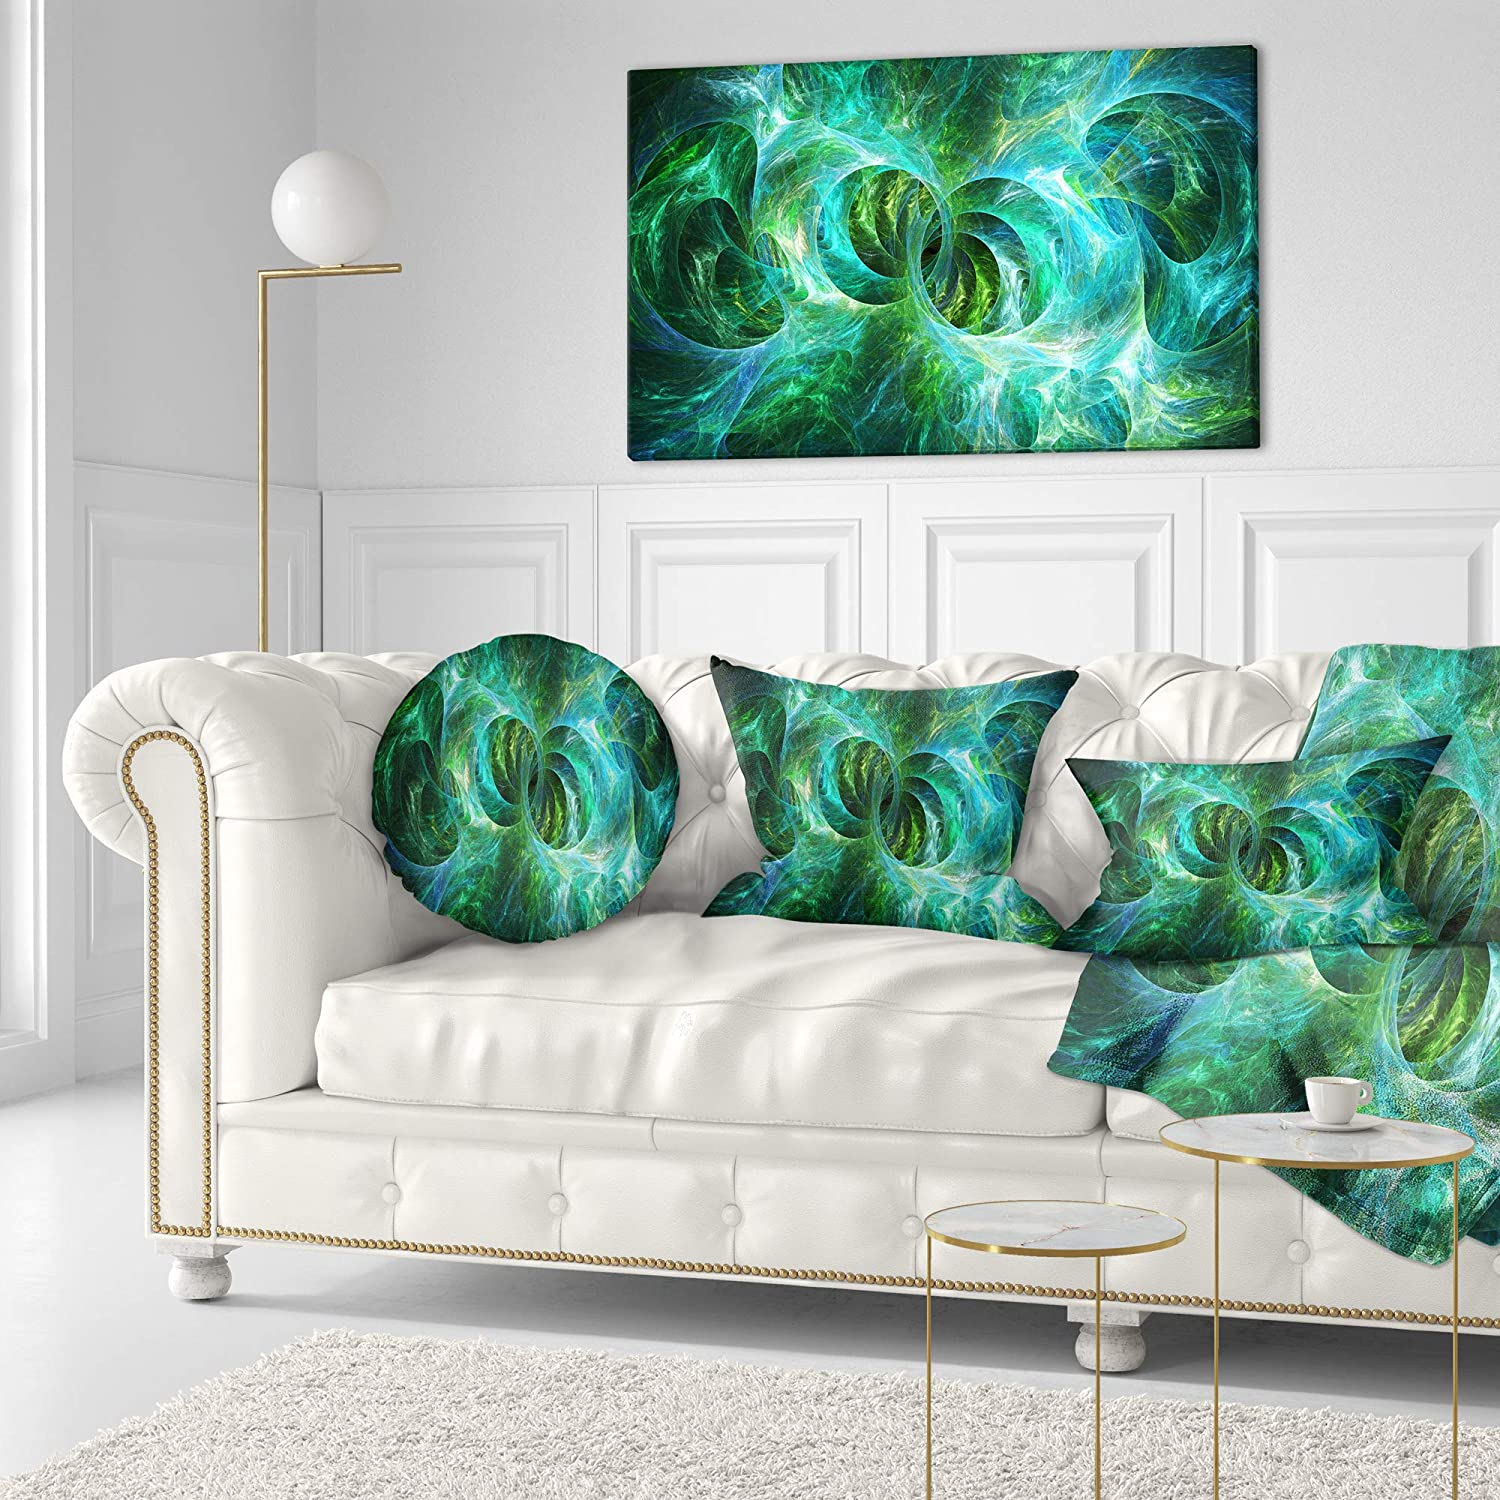 x 20 in Sofa 12 in Designart CU16190-12-20 Blue Fractal Ornamental Glass Abstract Lumbar Cushion Cover for Living Room Insert Printed On Both Side Throw Pillow